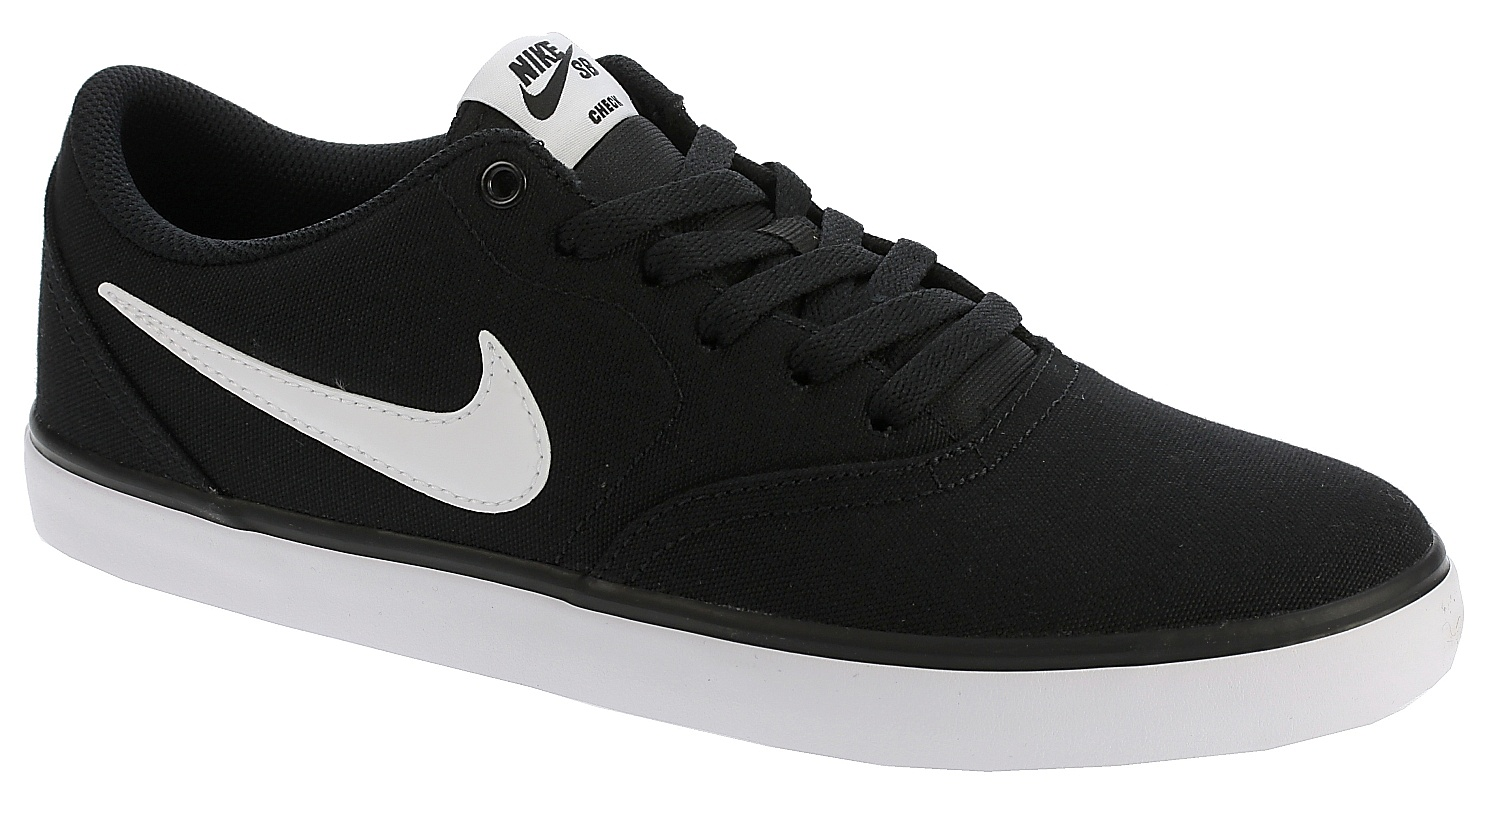 boty Nike SB Check Solar Canvas - Black/White 44.5